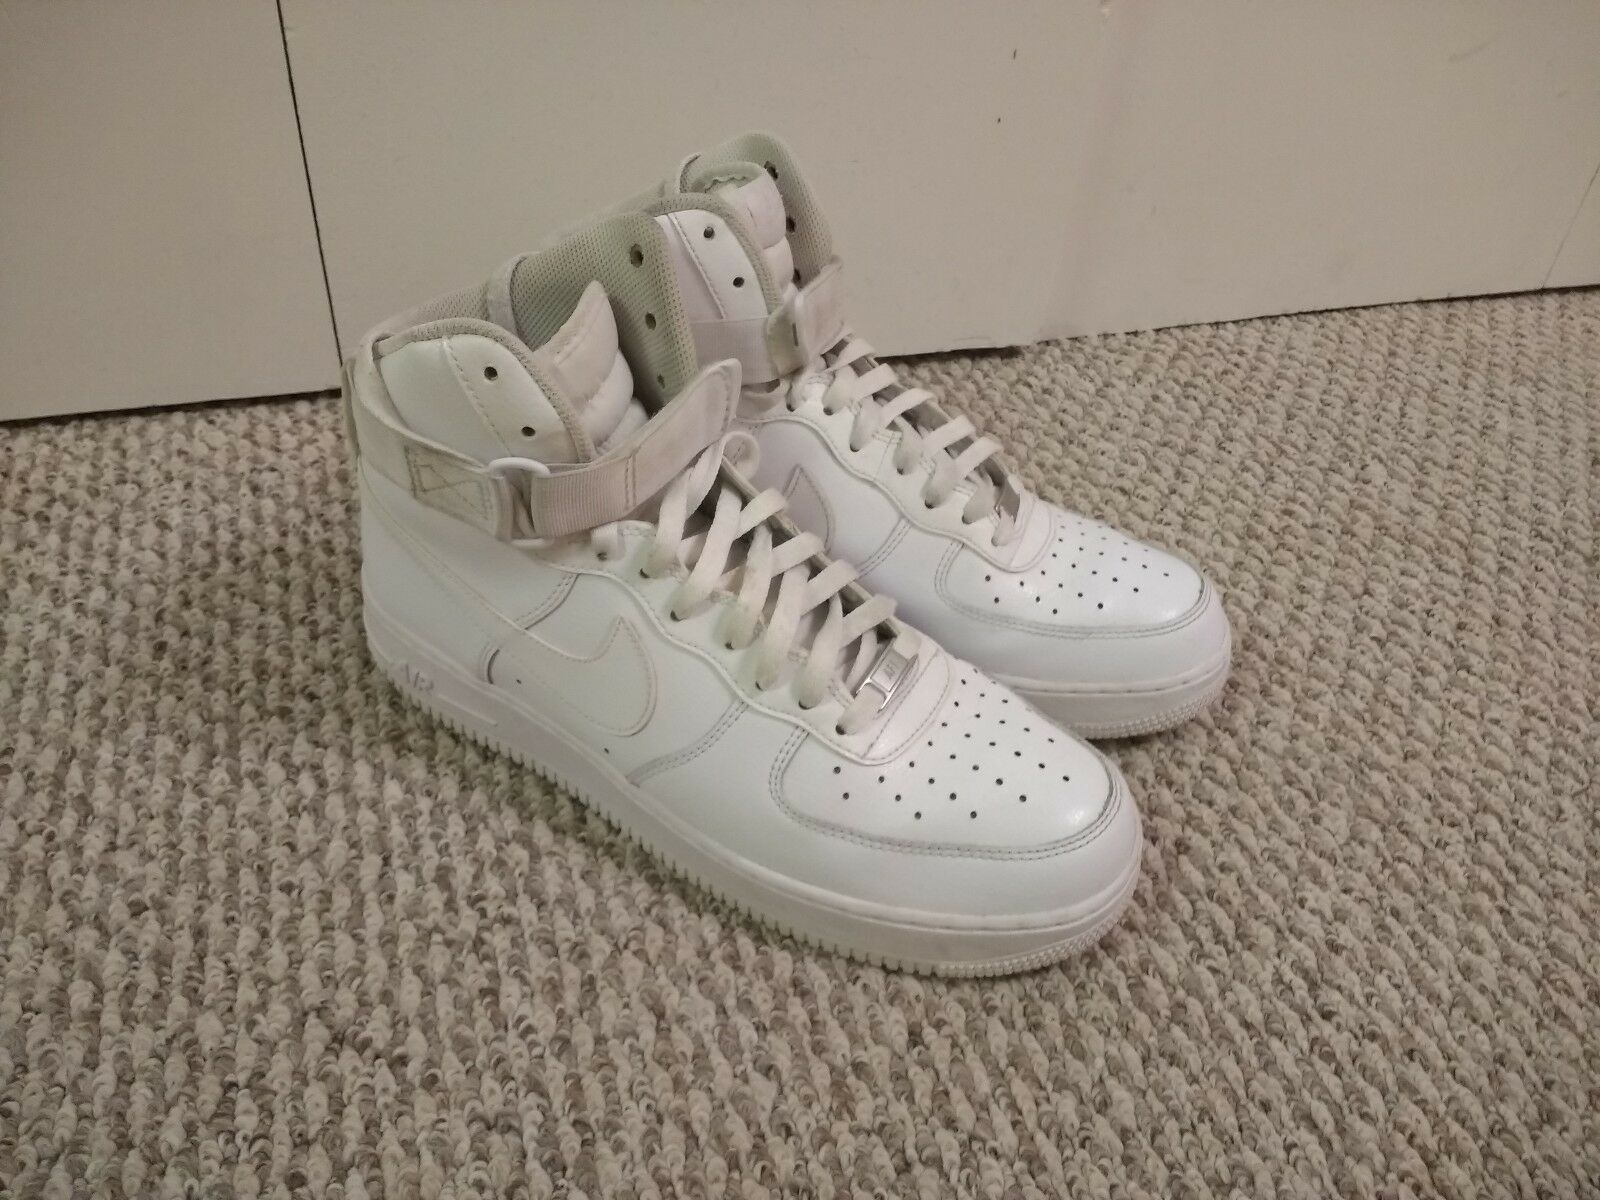 Air Force 1 One High Top. All White, US SIZE 11.5